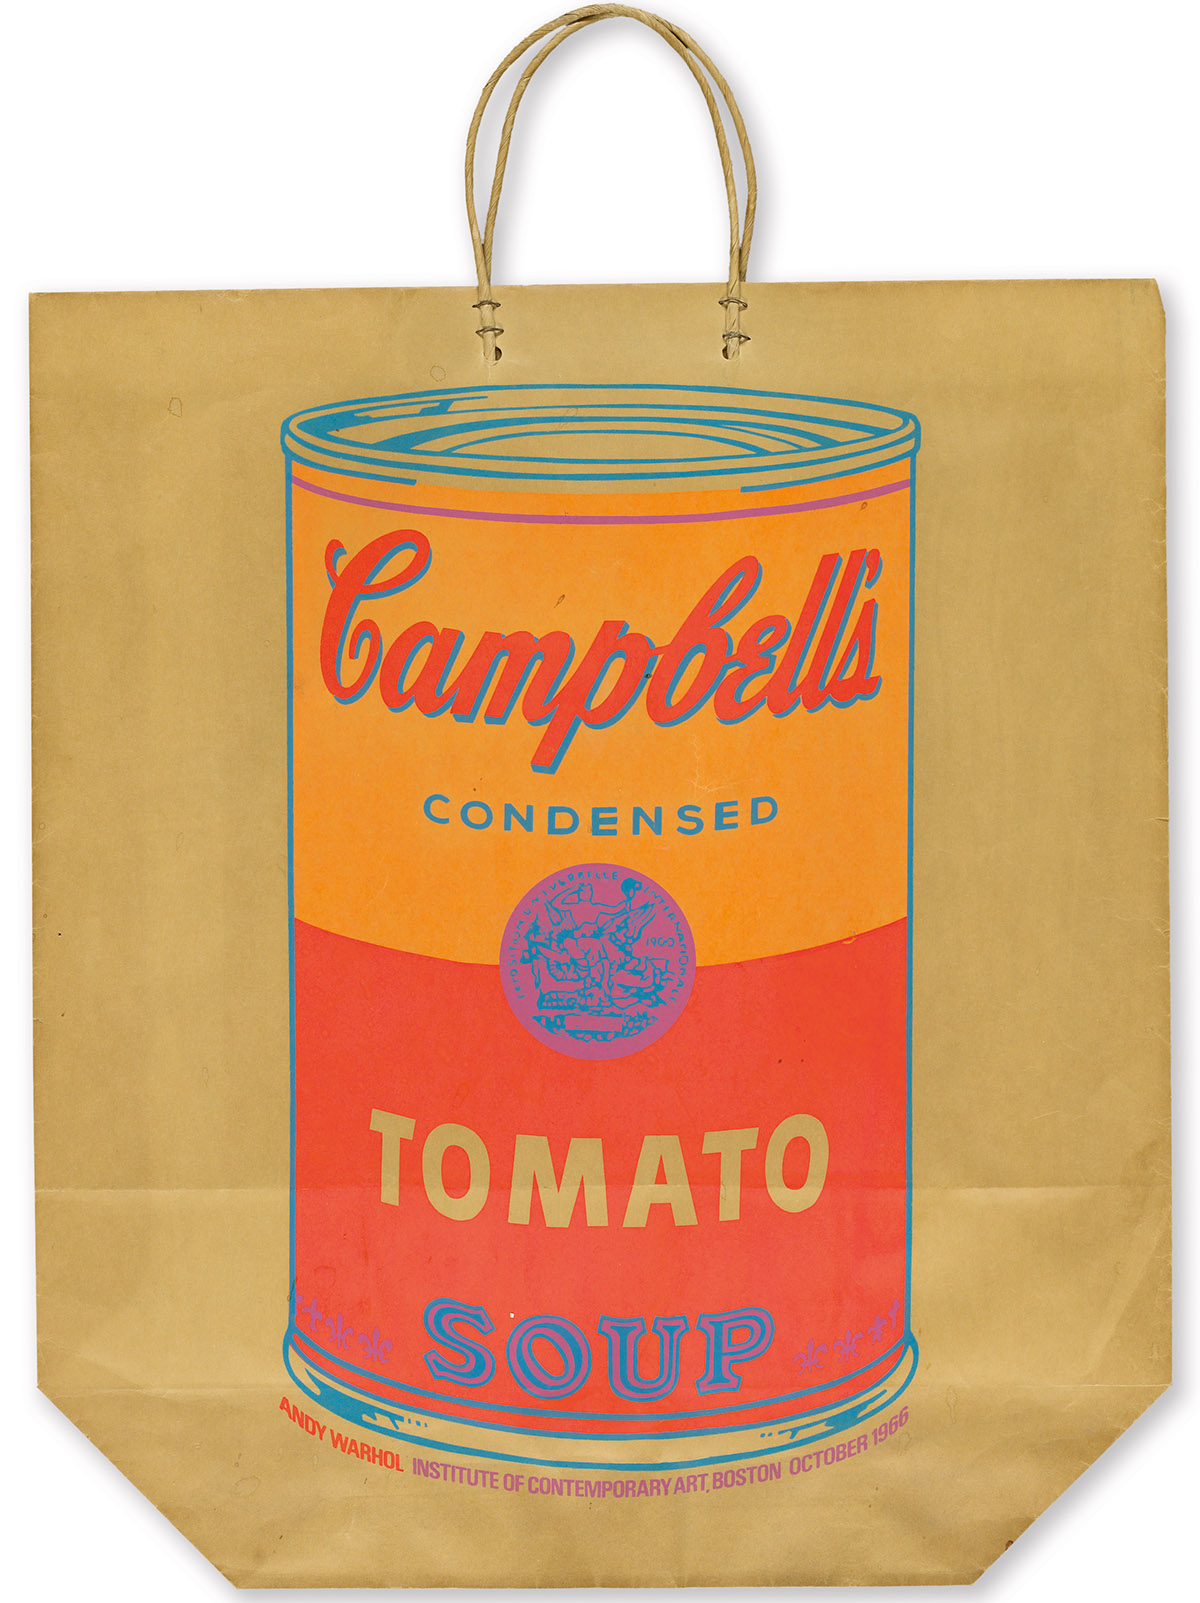 ANDY-WARHOL-Campbells-Soup-Can-on-a-Shopping-Bag